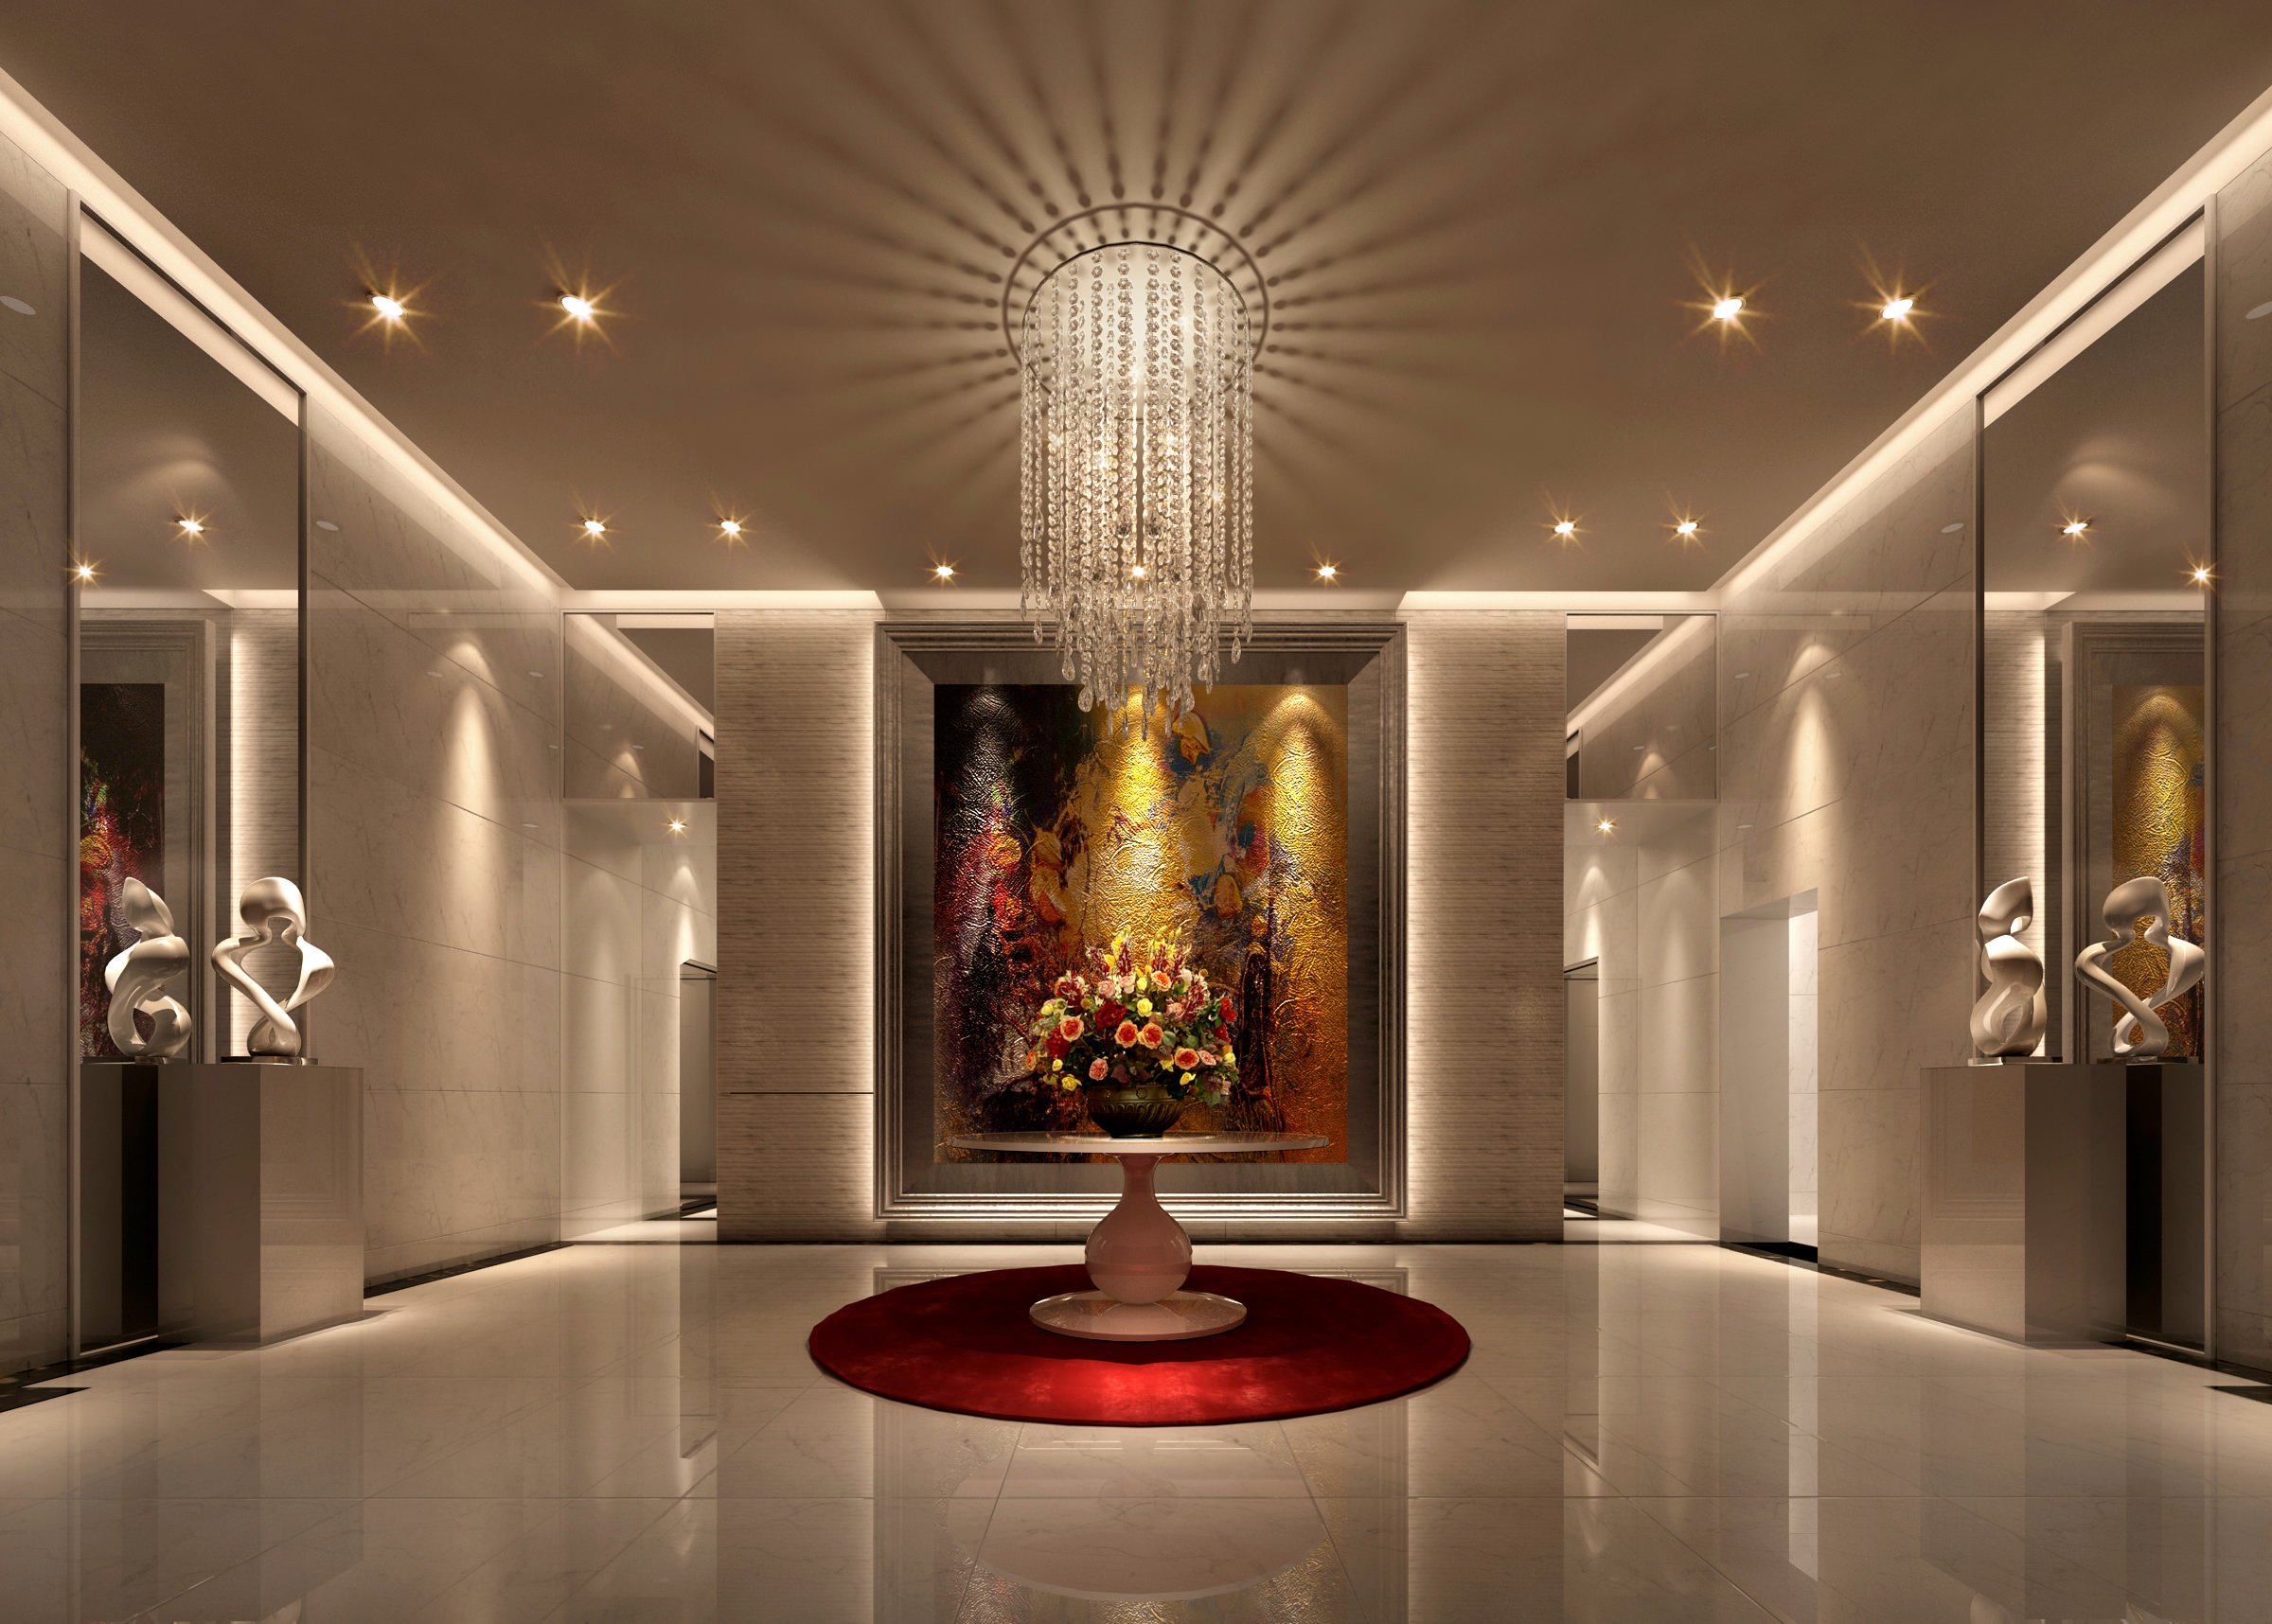 Corridor with Fancy Chandelier and Sculptures 3D model MAX